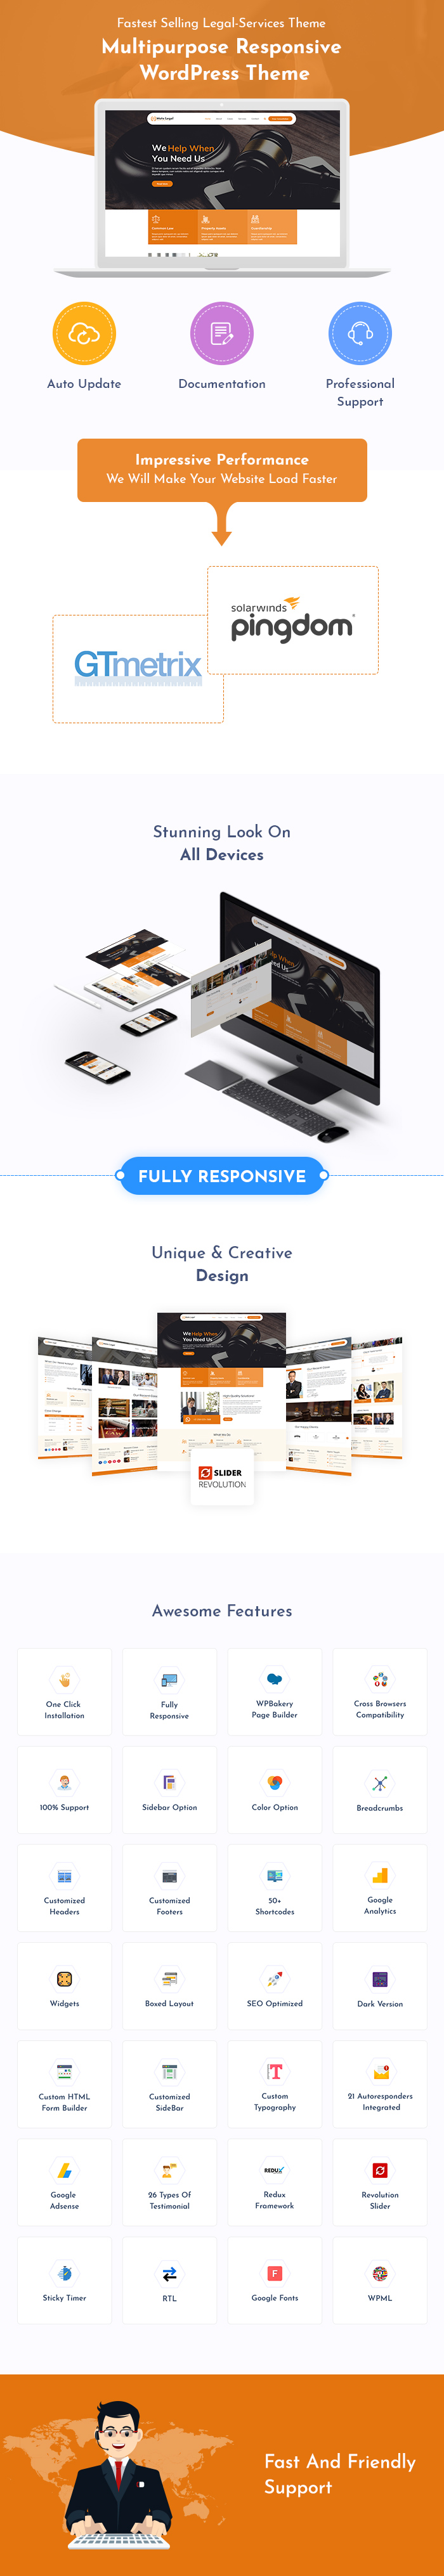 Legal Services WordPress Theme